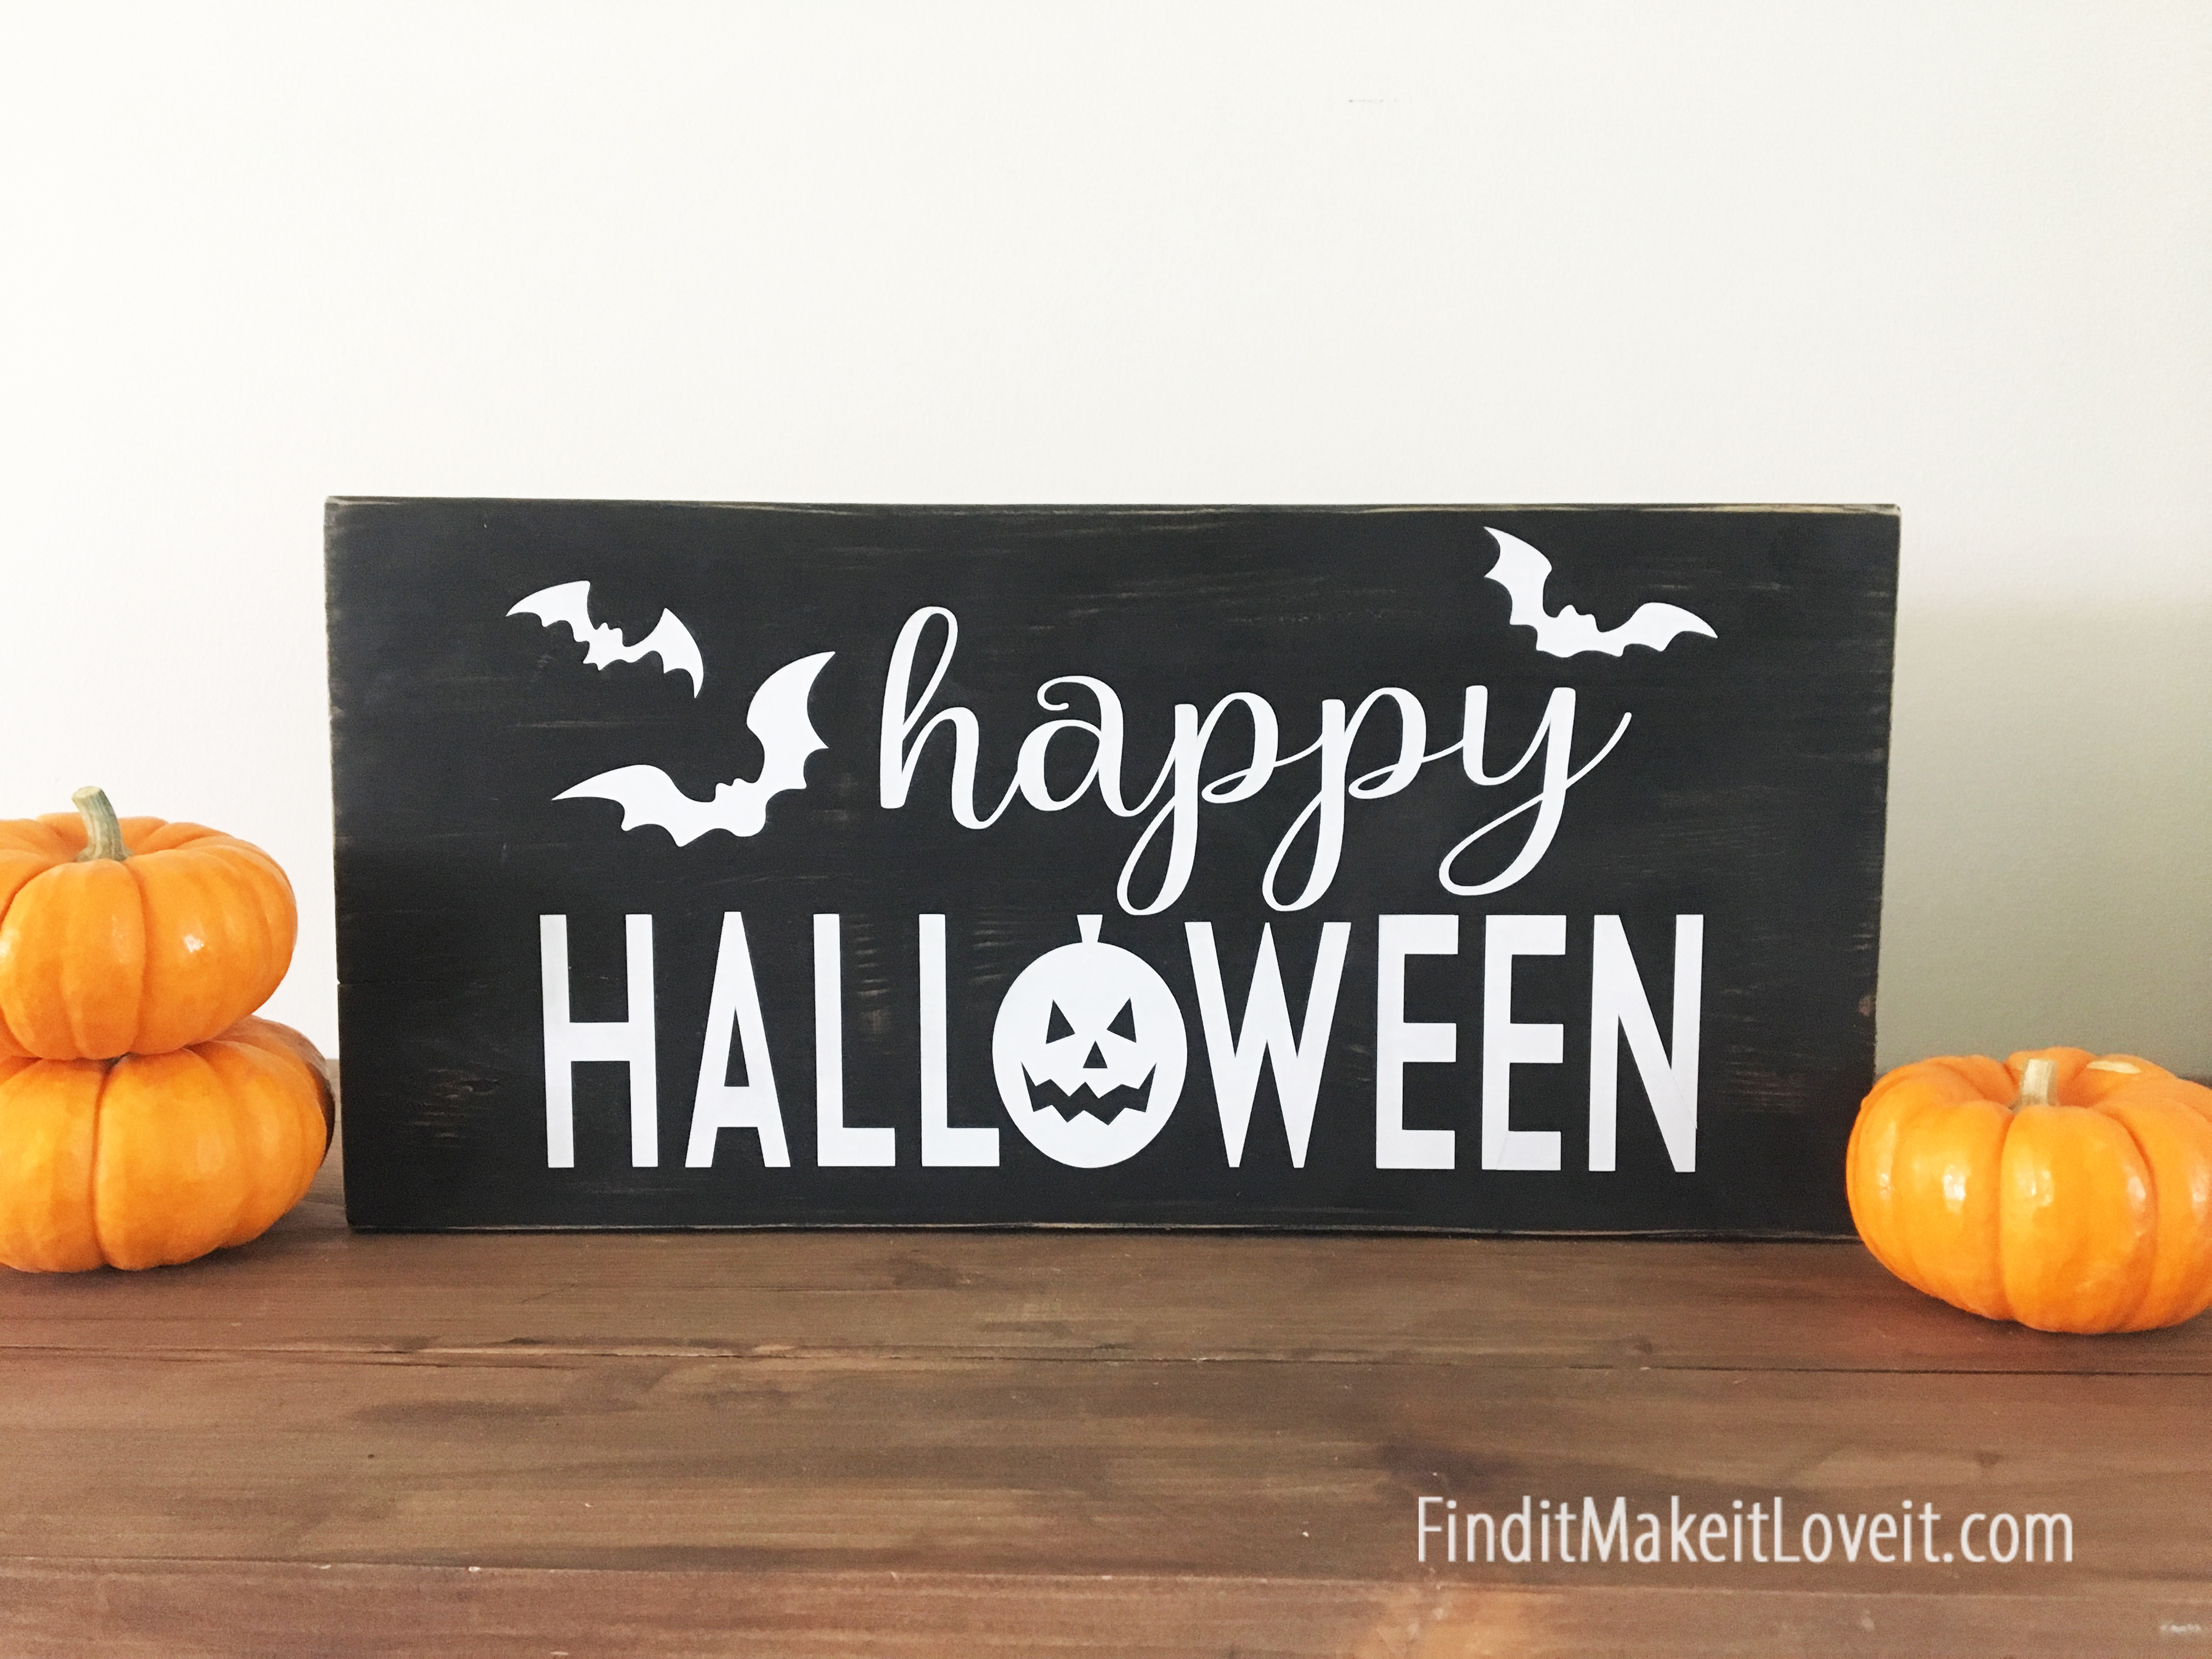 Happy Halloween Block Sign - Find it, Make it, Love it